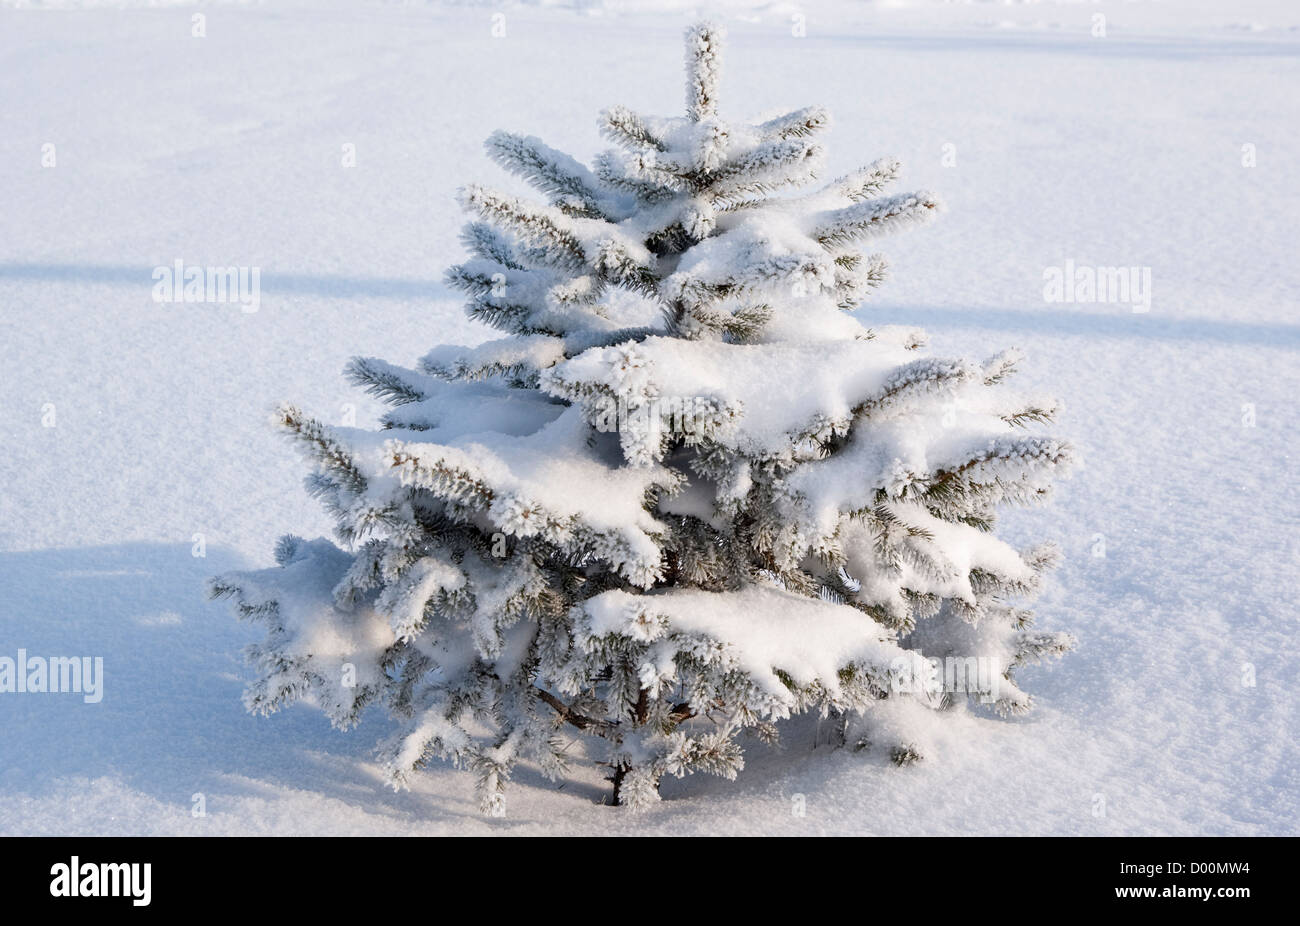 tree spruce(Picea A. Dietrich) in winter scenery - Stock Image